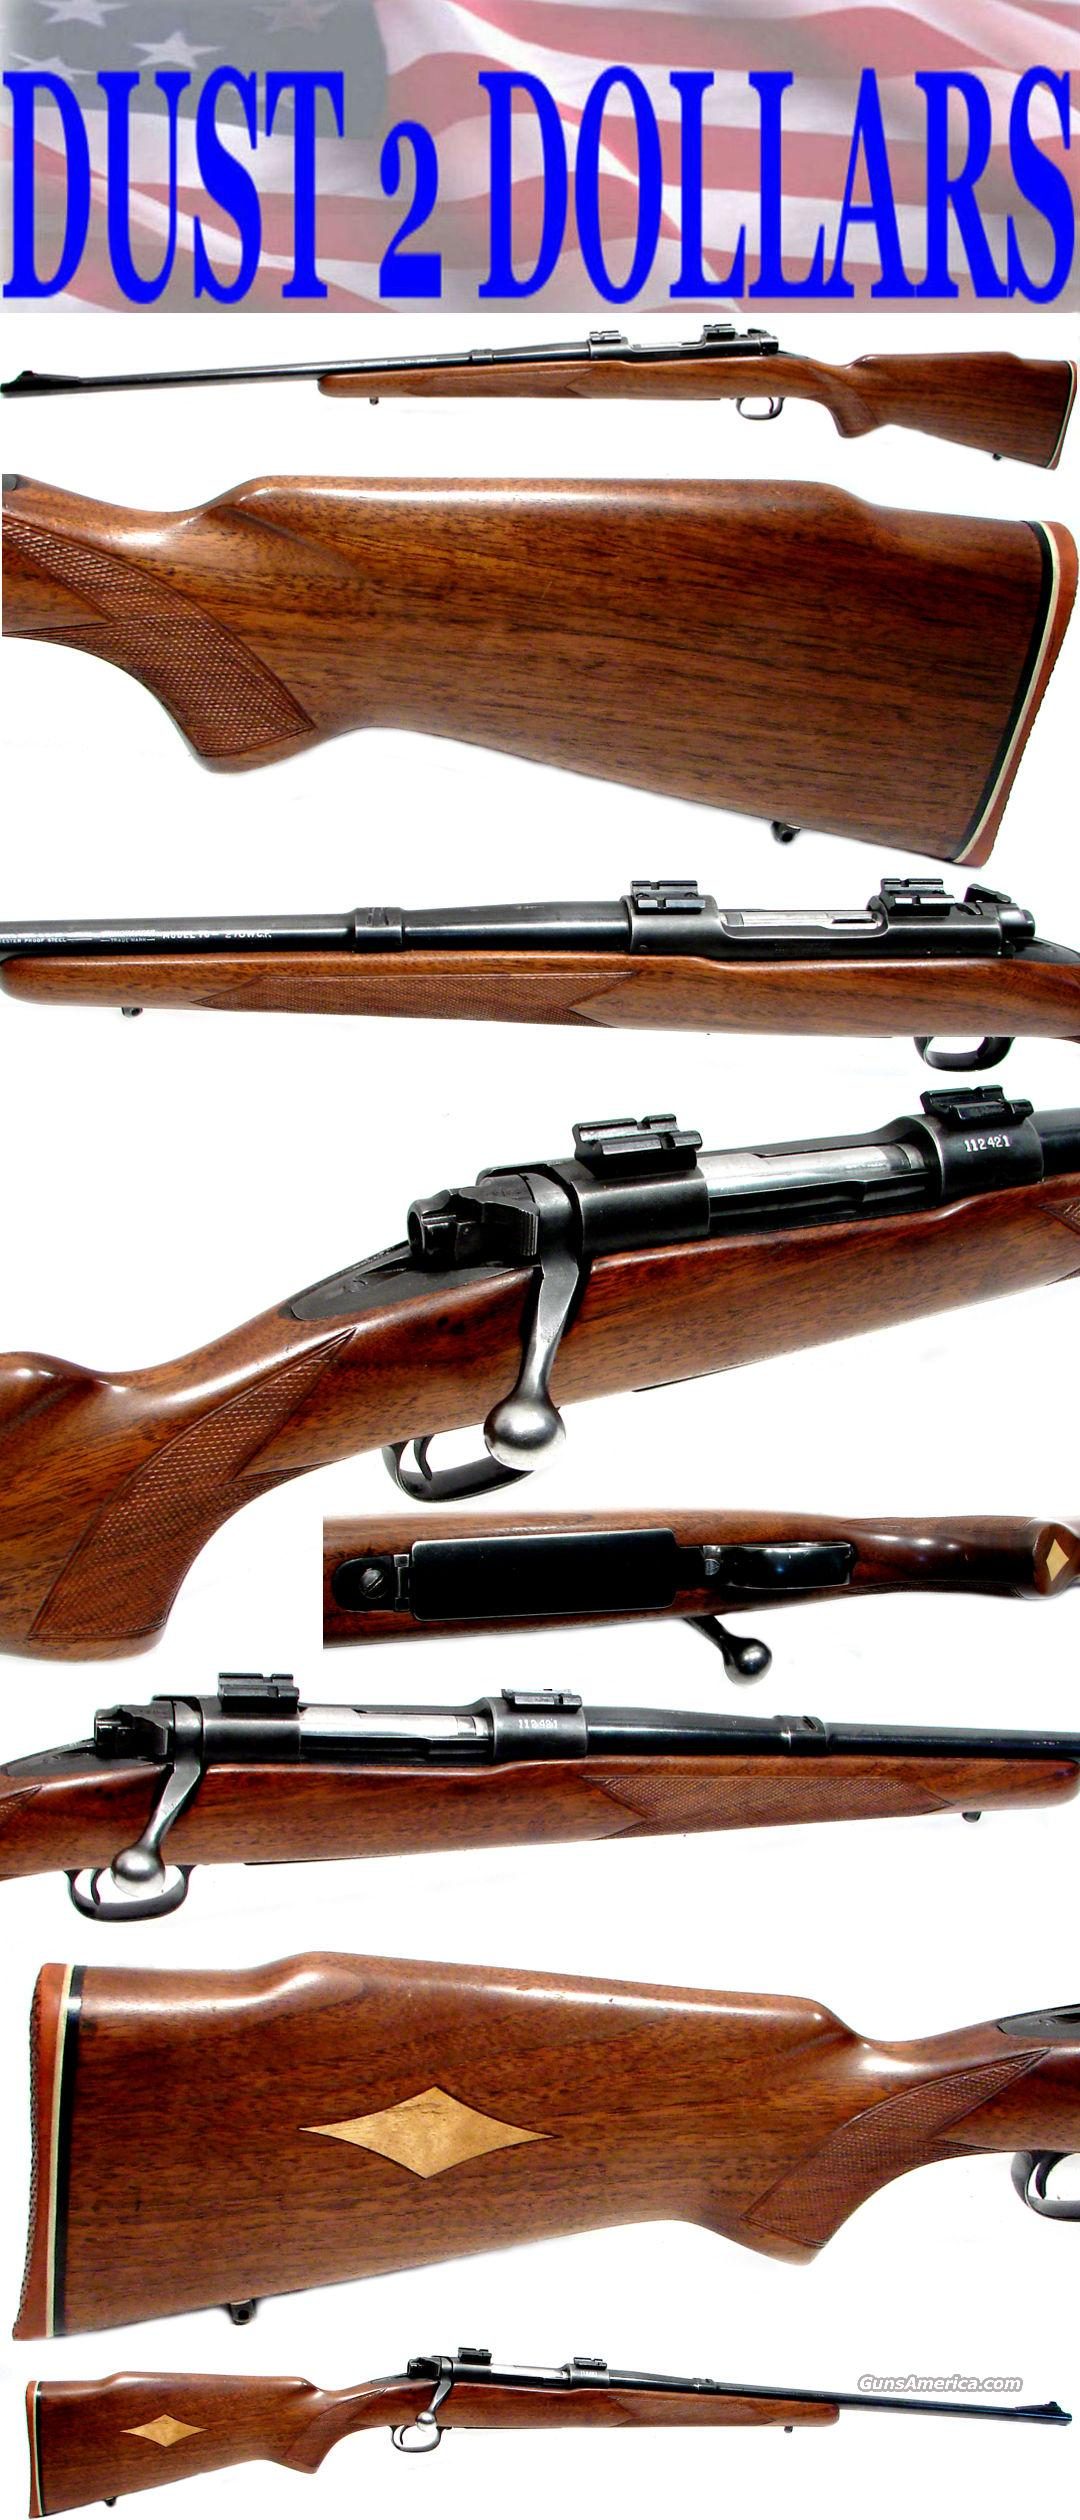 Winchester Pre-64 Model 70 270 WCF Mfd 1949  Guns > Rifles > Winchester Rifles - Modern Bolt/Auto/Single > Model 70 > Pre-64